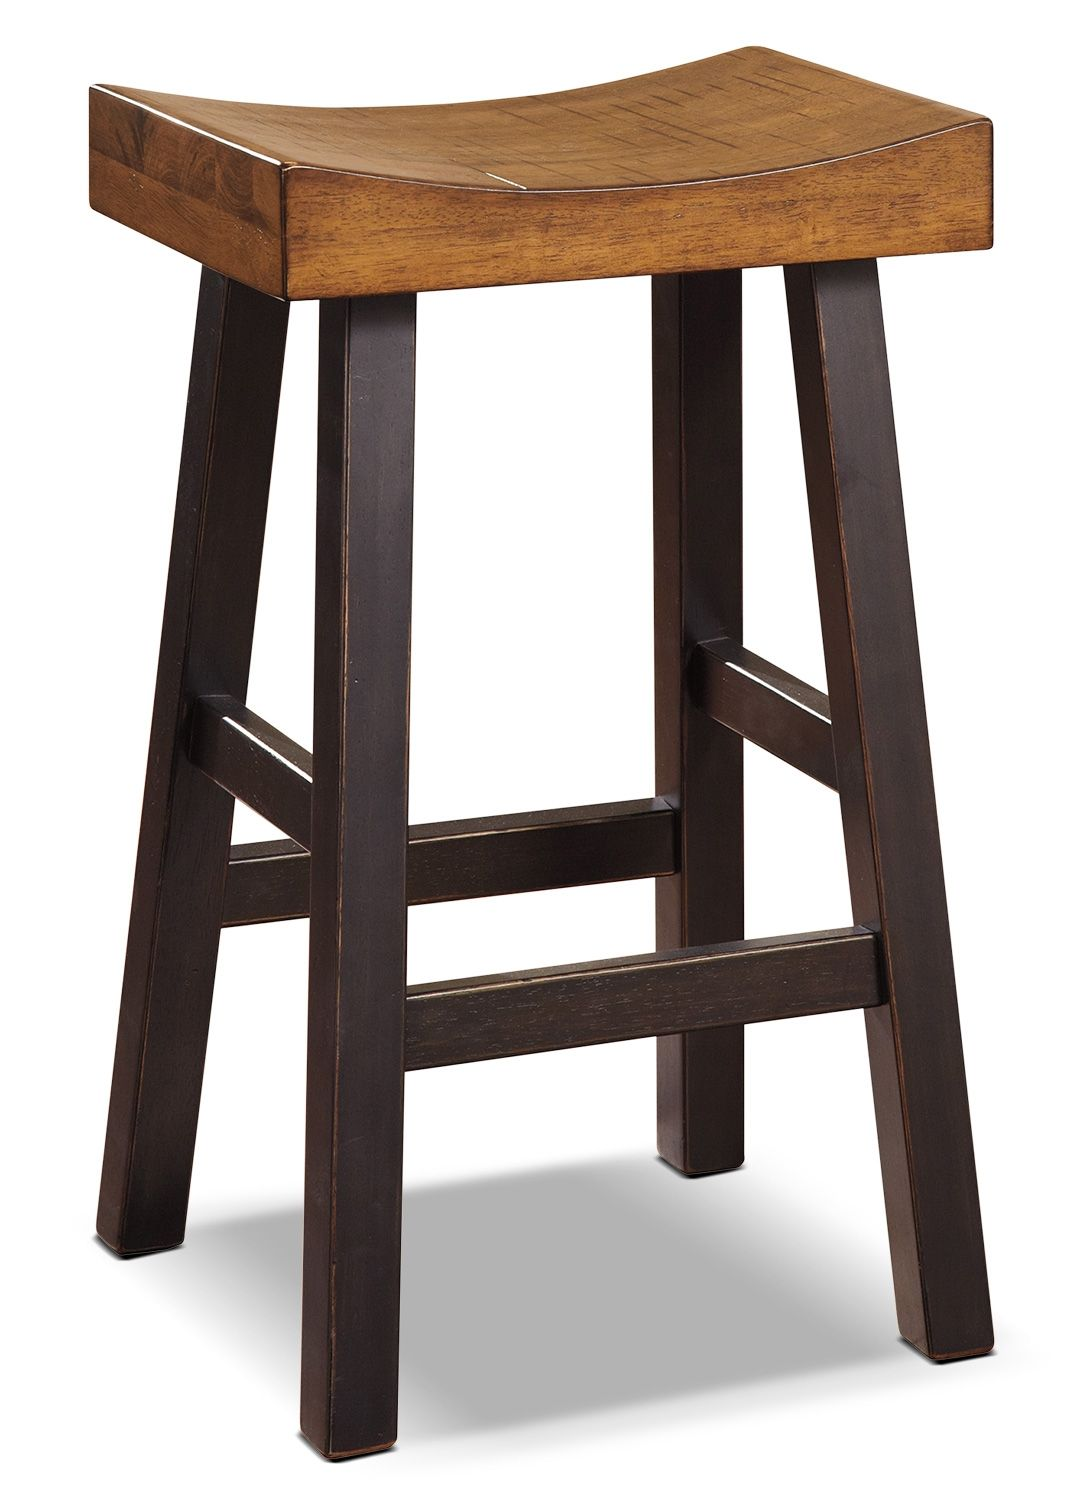 Take A Load Off On The Glosco 30 Inch Saddle Seat Bar Stool Whether You Re Sitting At Work Bench Taking Quick Breakfast Kitchen Counter Or